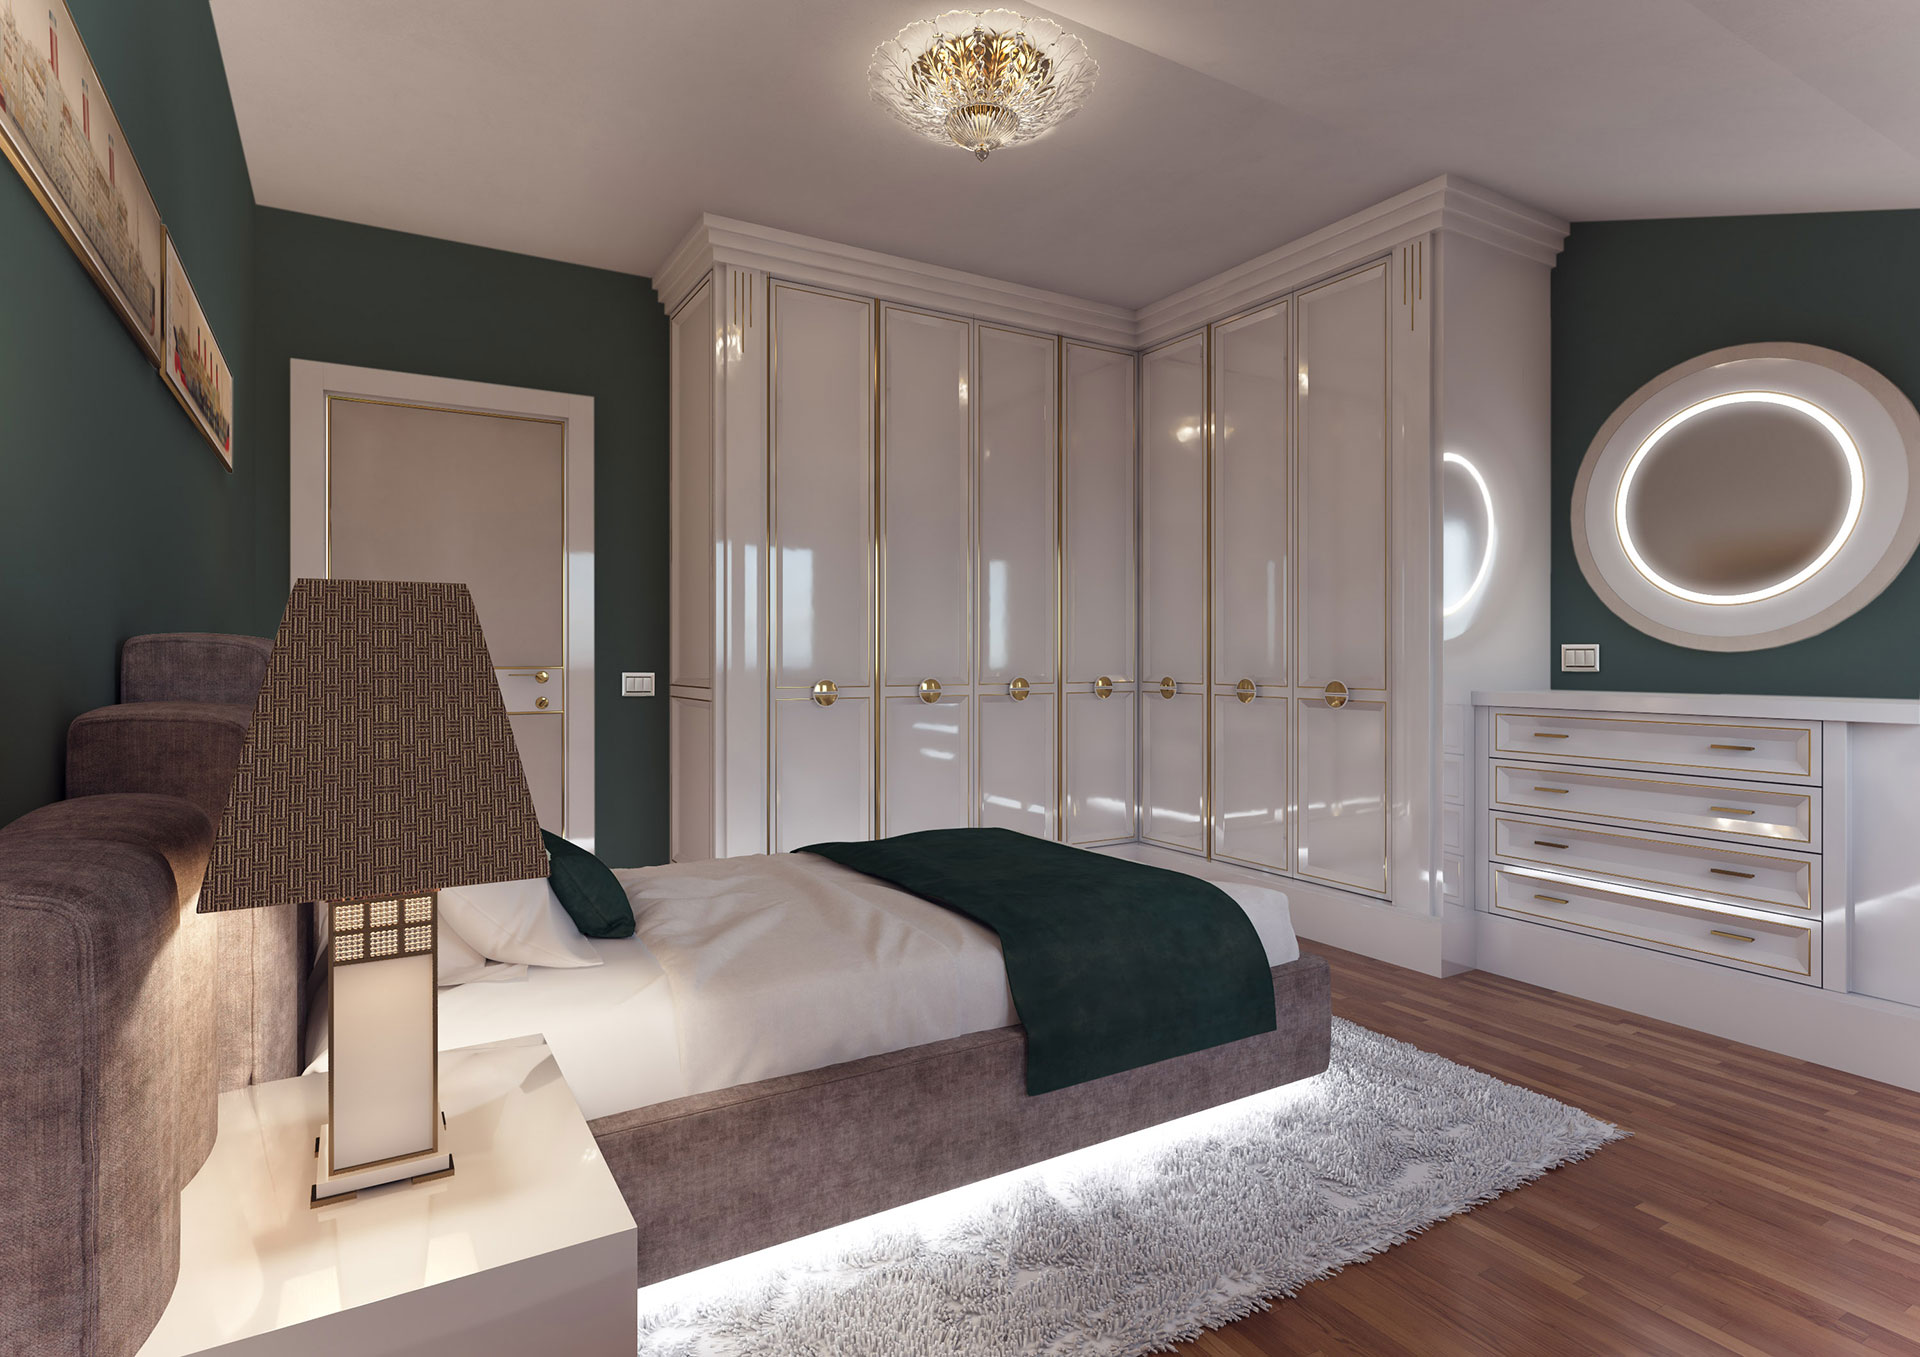 Faoma design bedroom with single bed